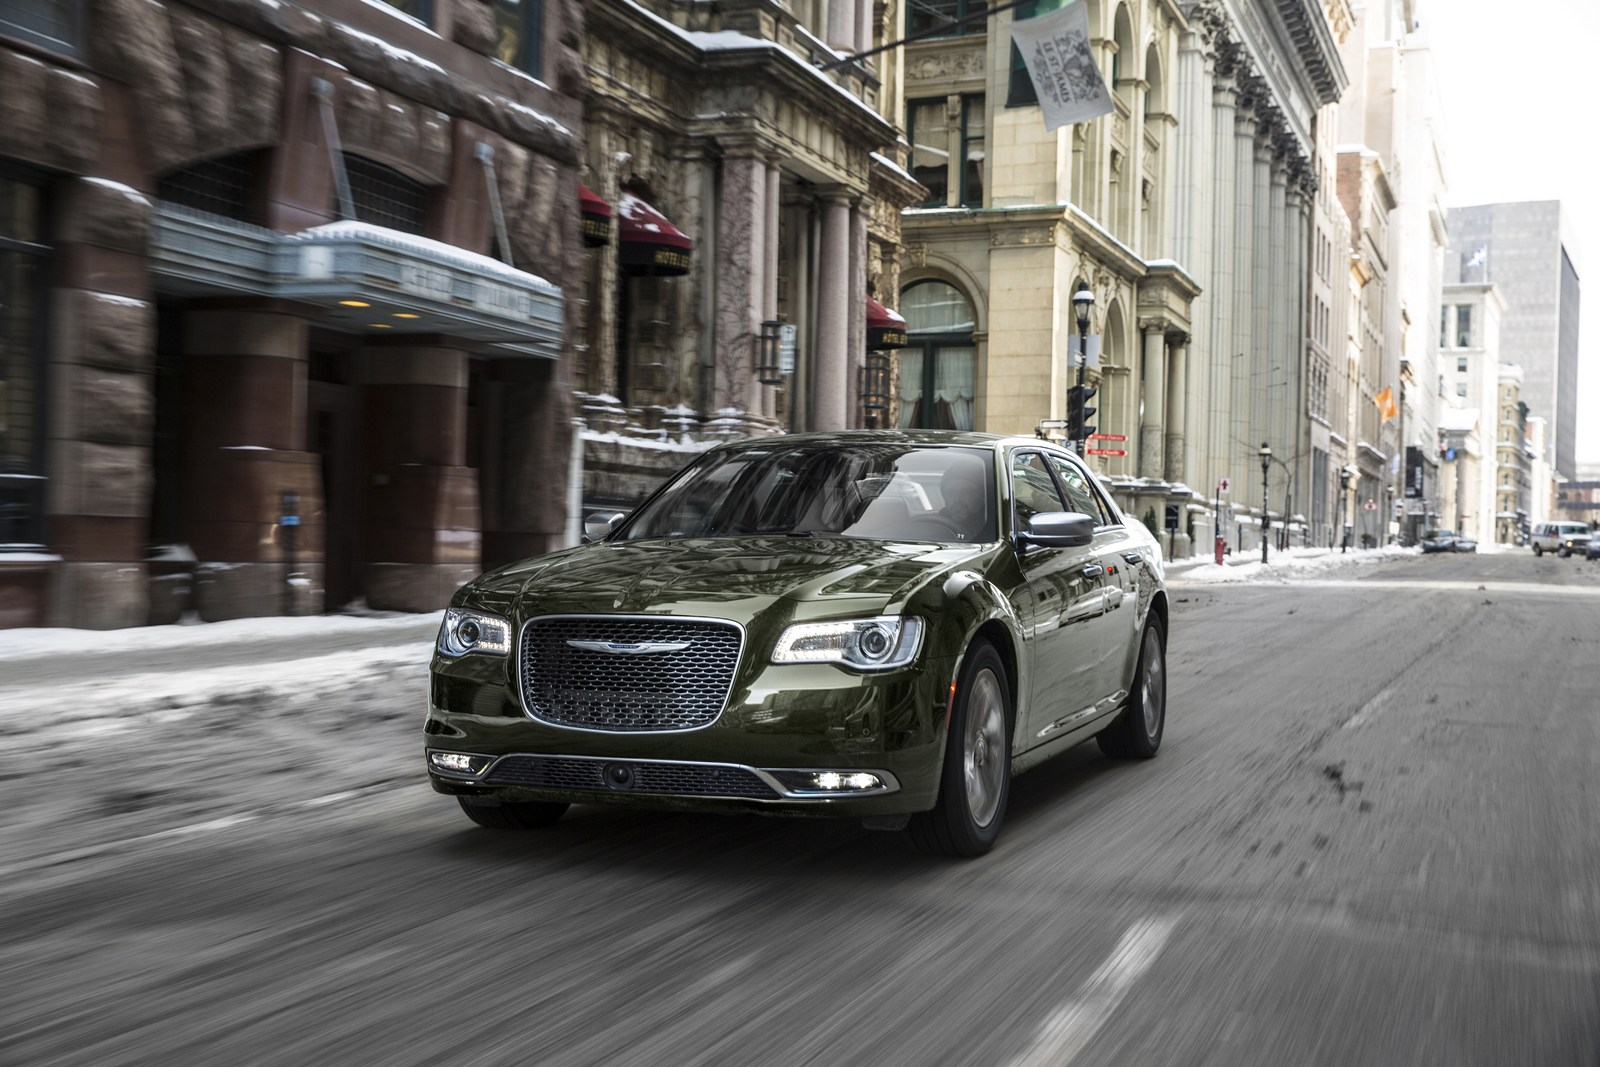 Chrysler Reportedly Axes Redesigned 300, Hellcat Model In ...